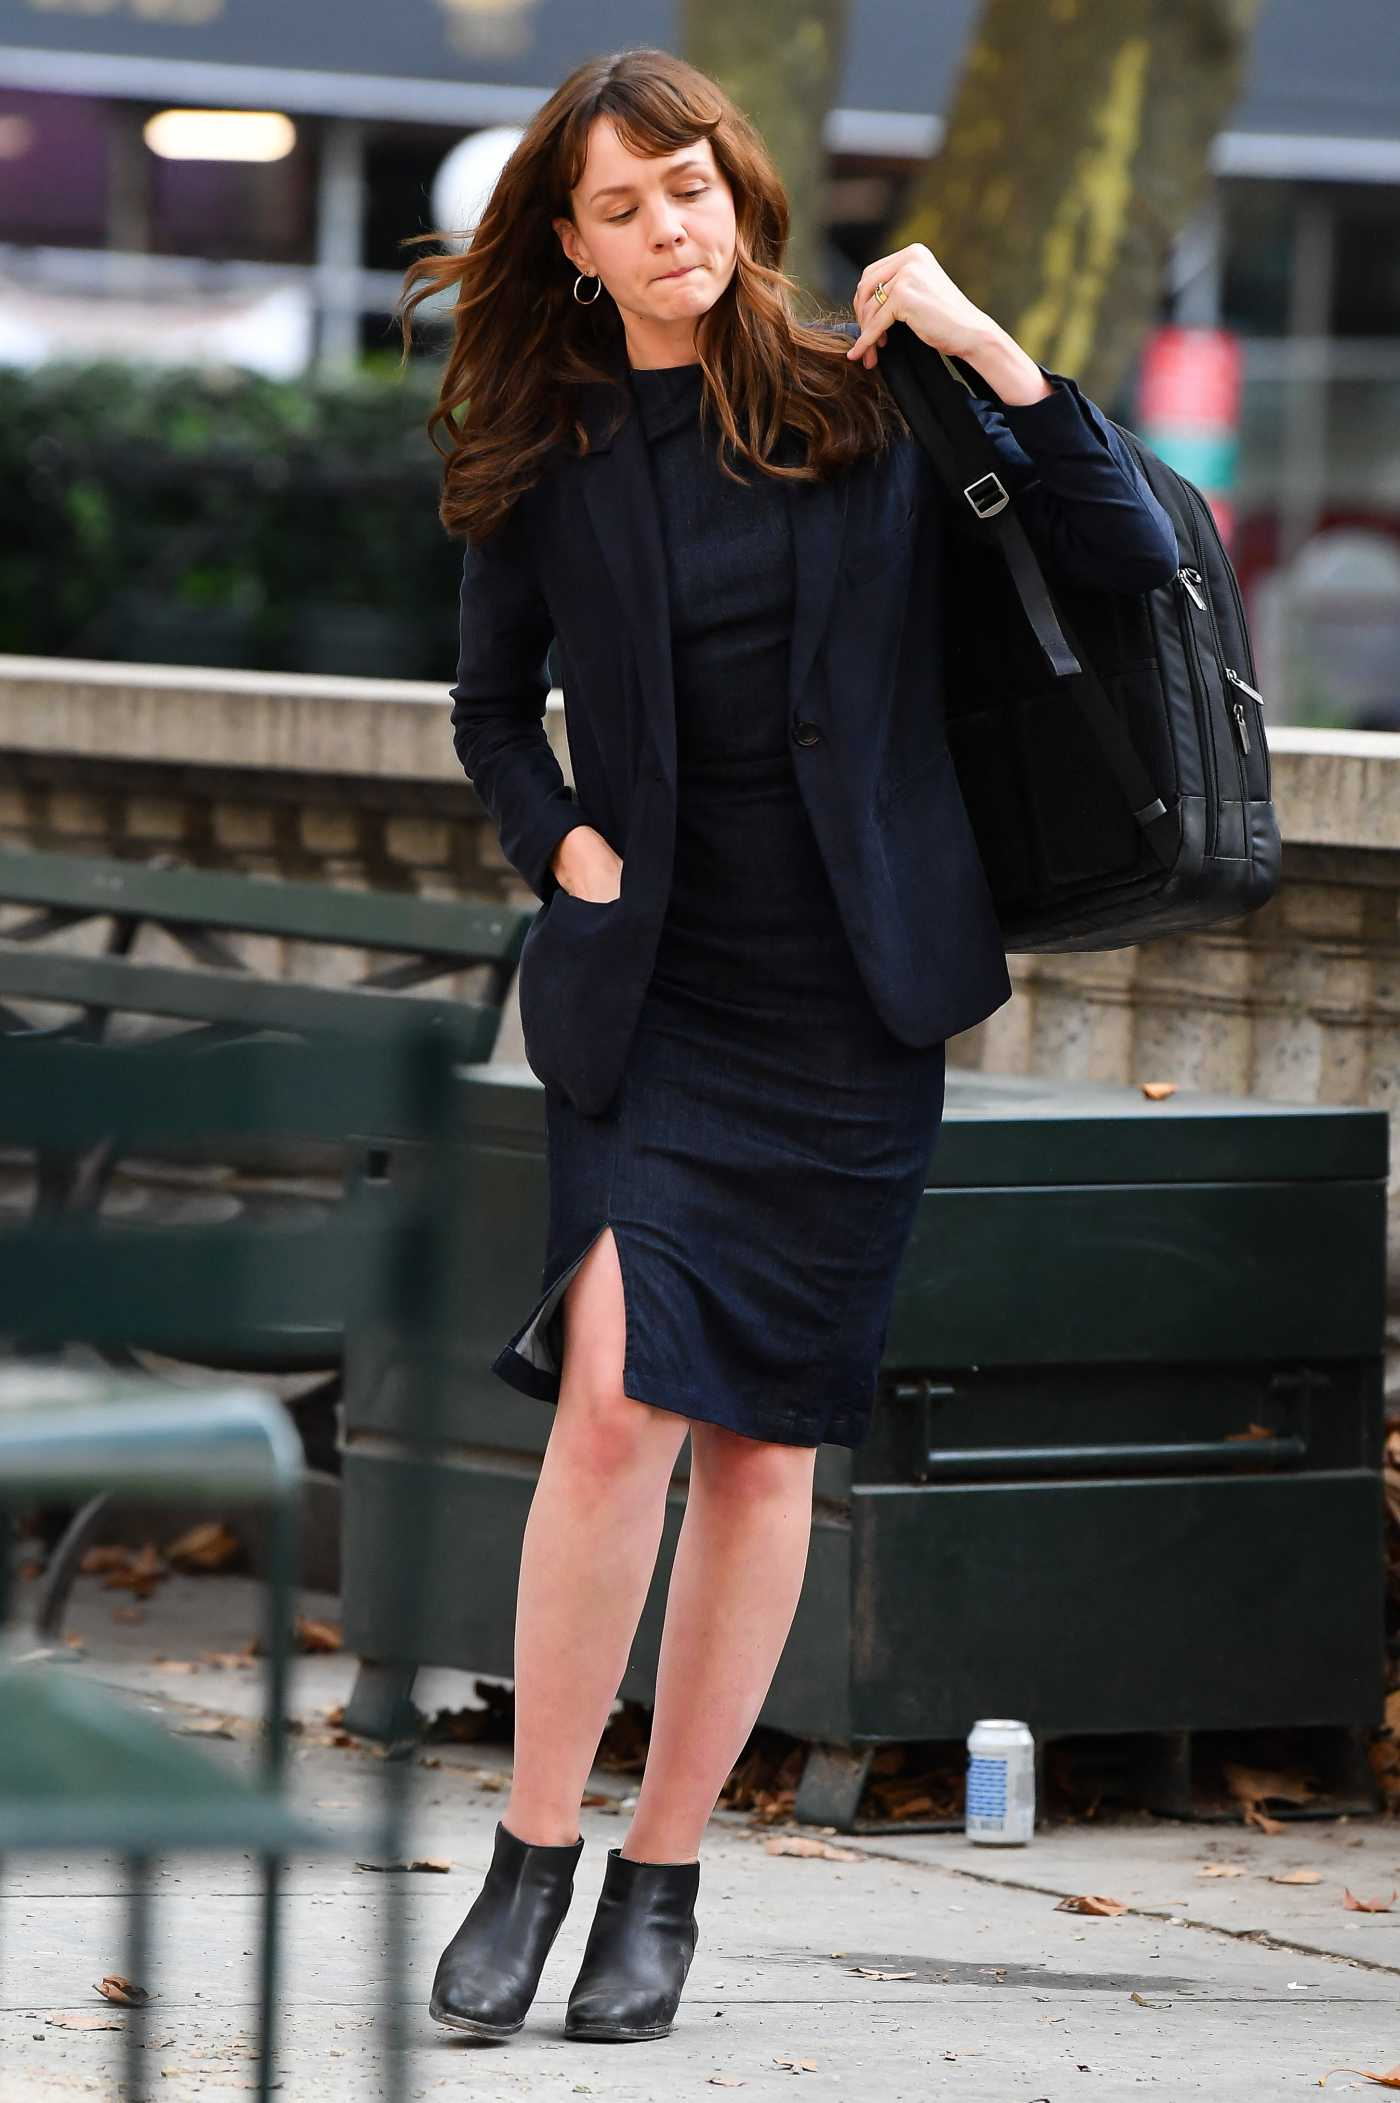 Carey Mulligan in a Black Blazer on the Set of She Said in Bryant Park in New York 08/17/2021